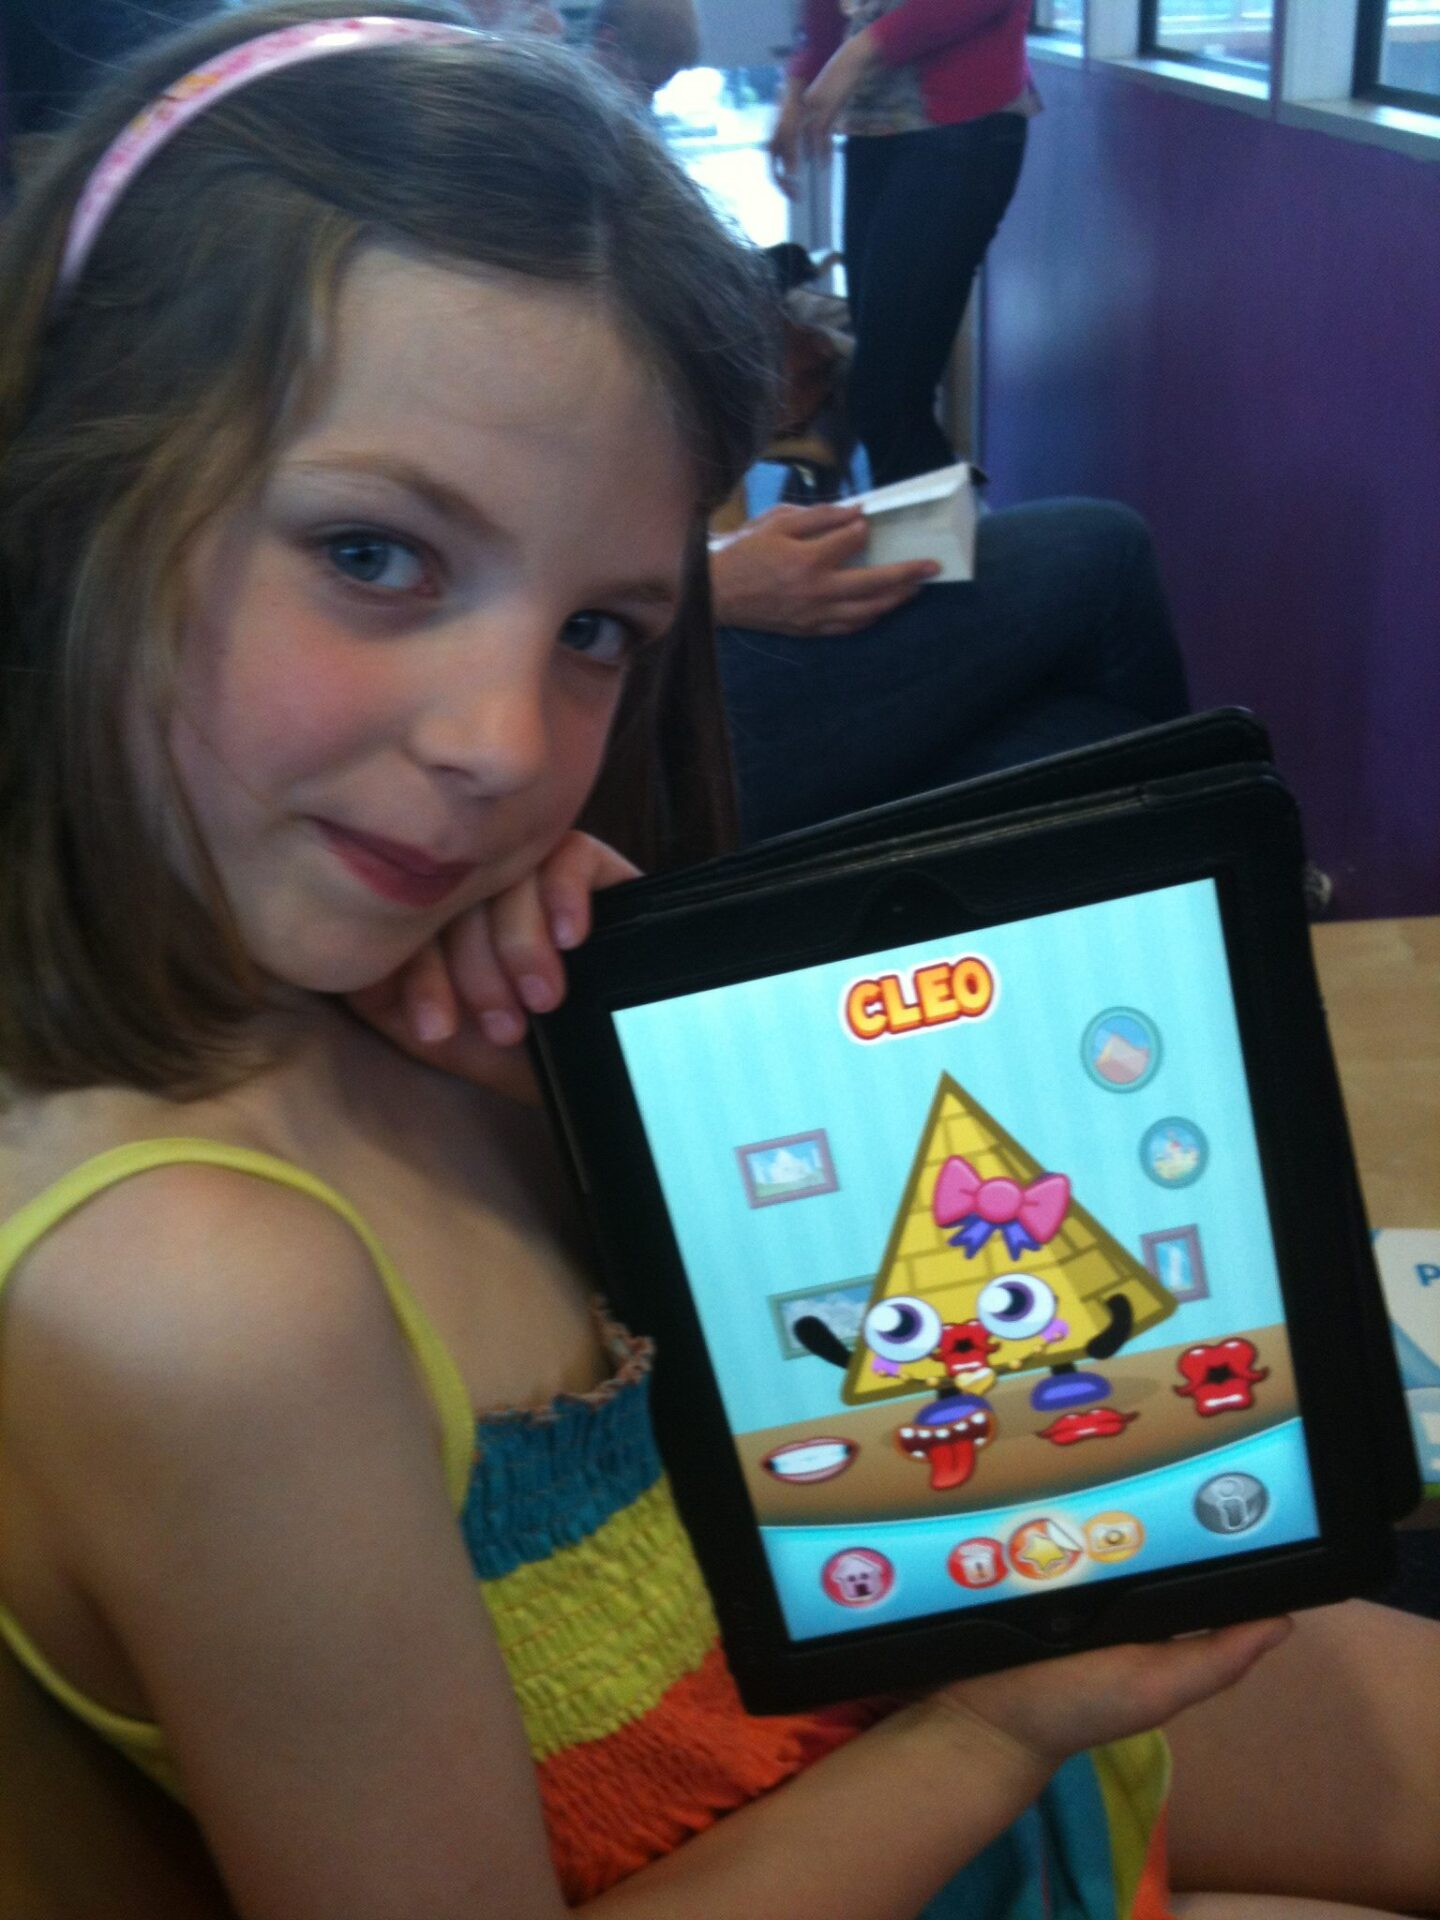 kiddycharts-reward-charts-moshi-monster-moshling-cleo-by-chatterbox